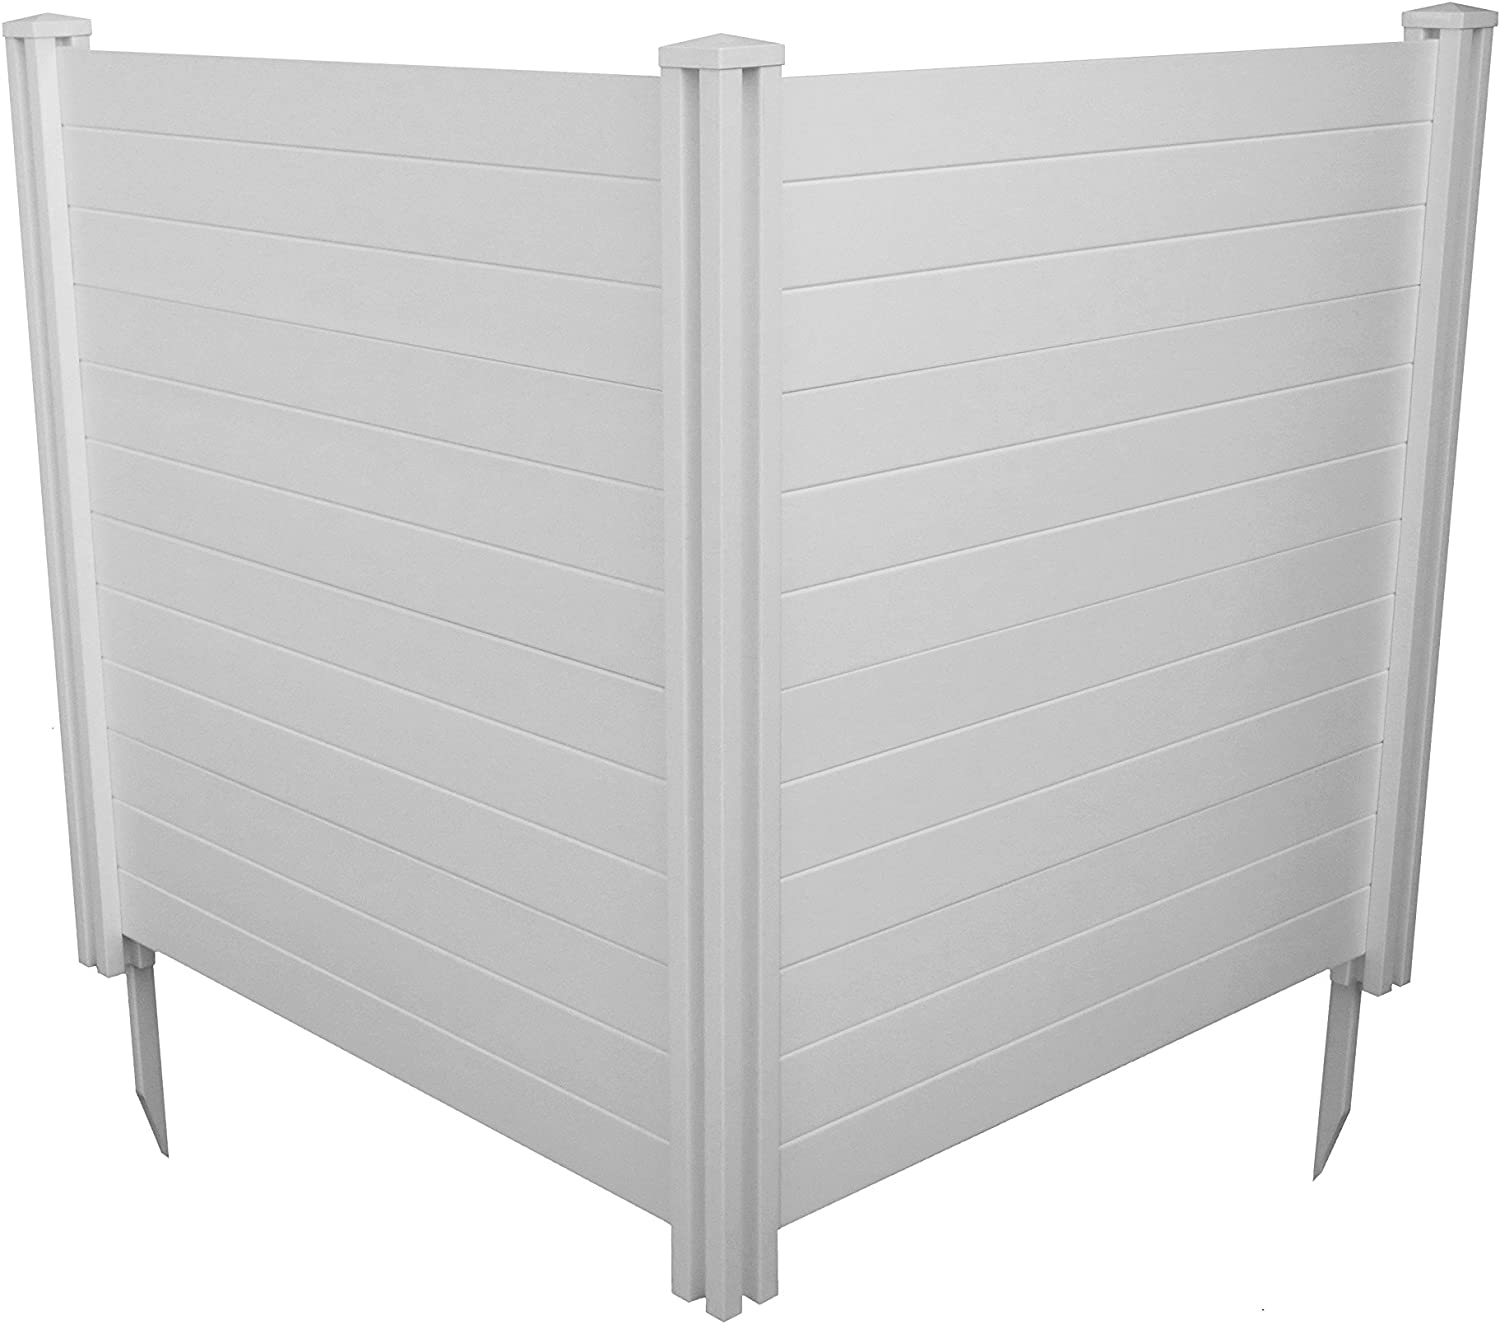 Zippity Outdoor Premium Vinyl Privacy Screen